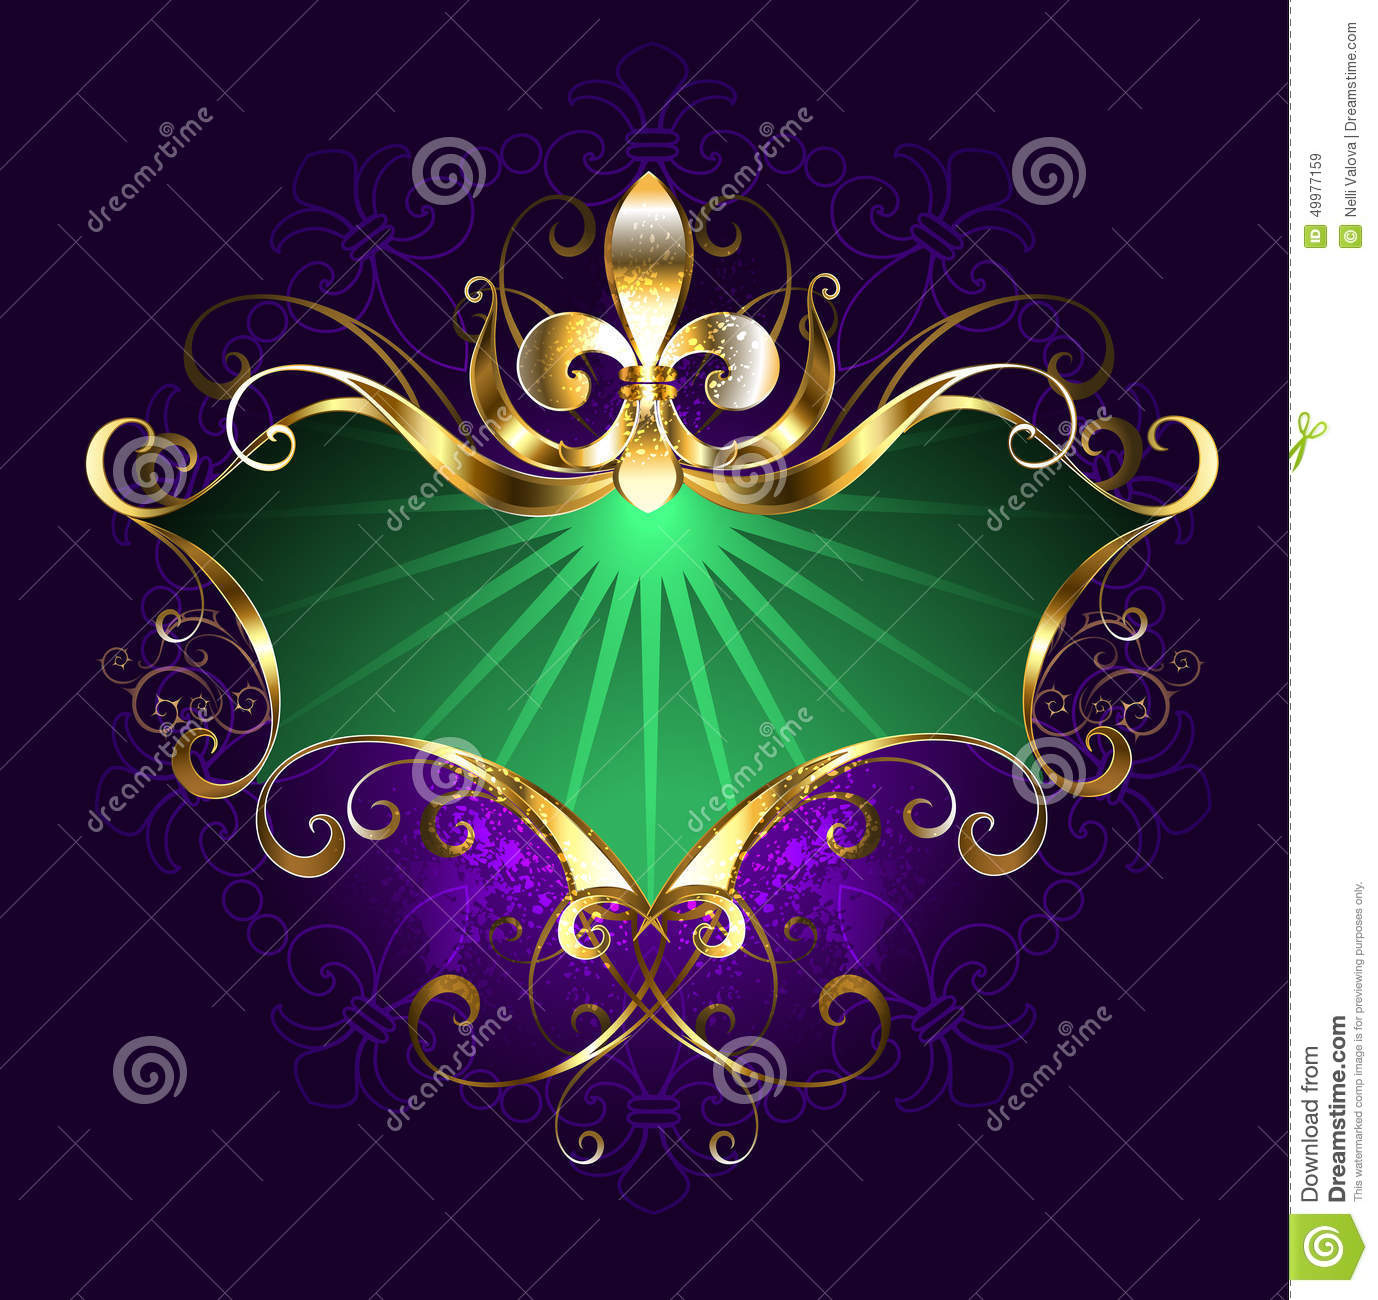 banner mardi gras stock vector image 49977159. Black Bedroom Furniture Sets. Home Design Ideas